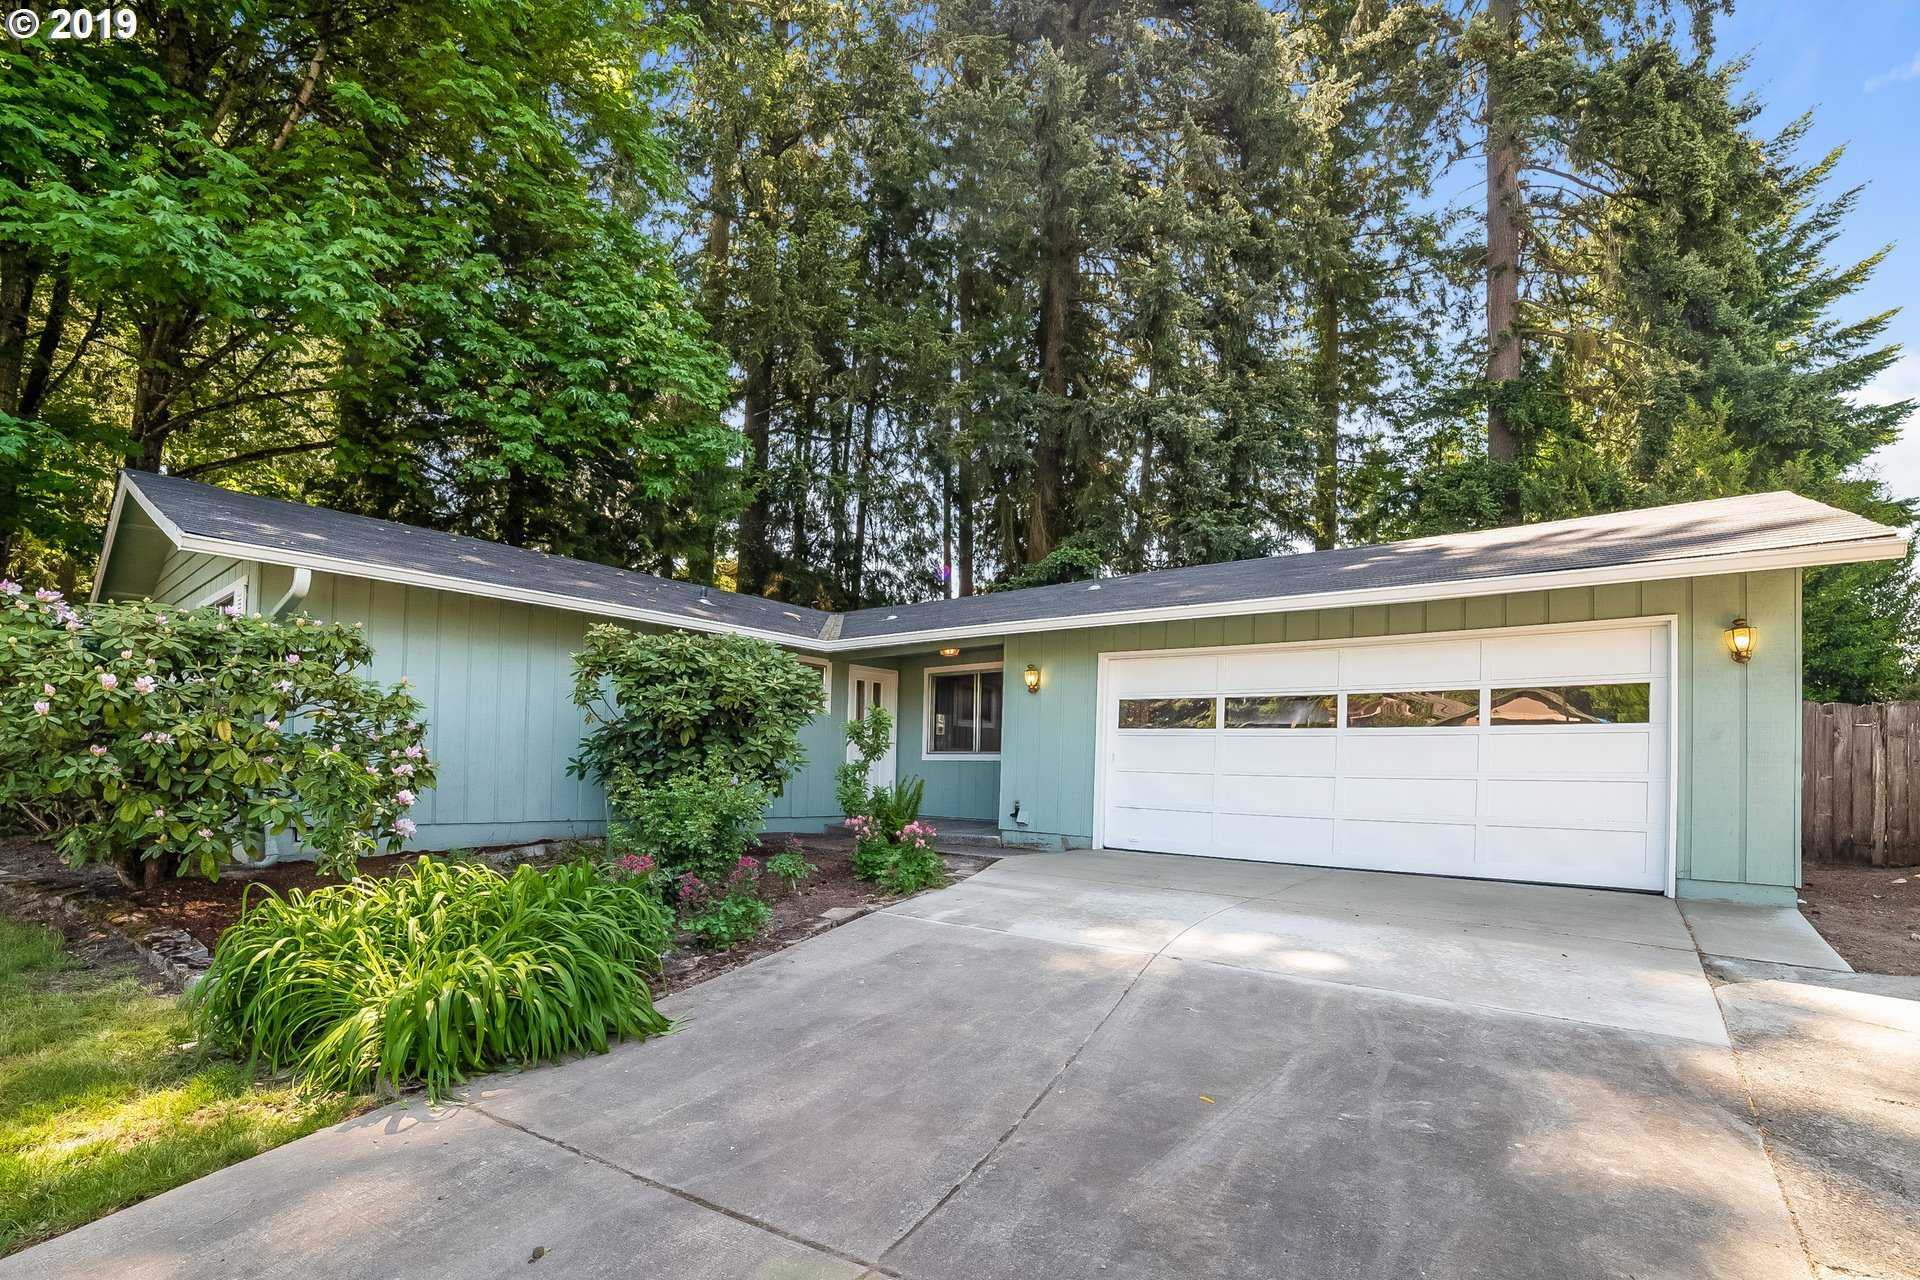 $354,000 - 2Br/2Ba -  for Sale in Tigard